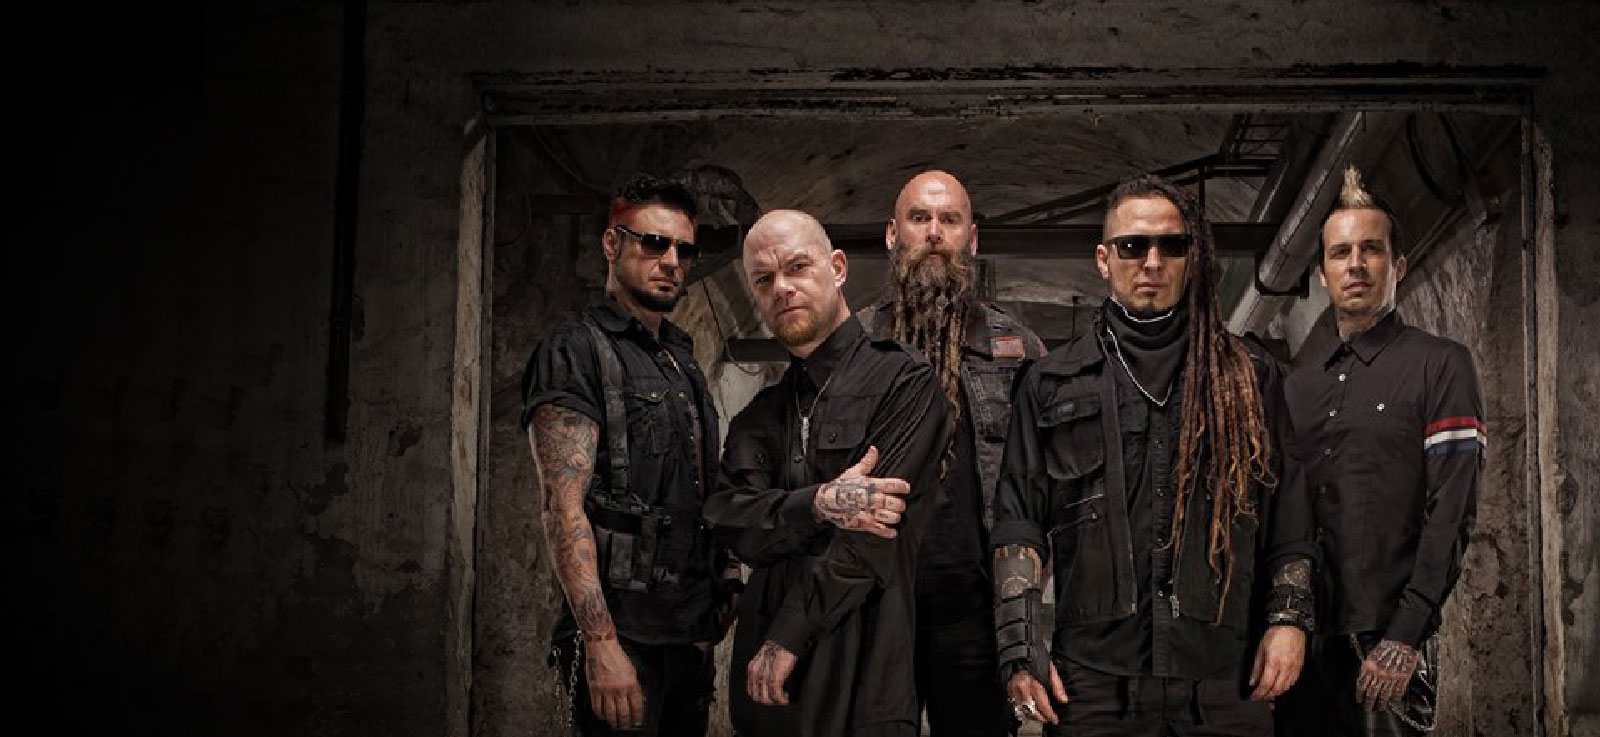 Five Finger Death Punch en concert à L'Olympia à Paris